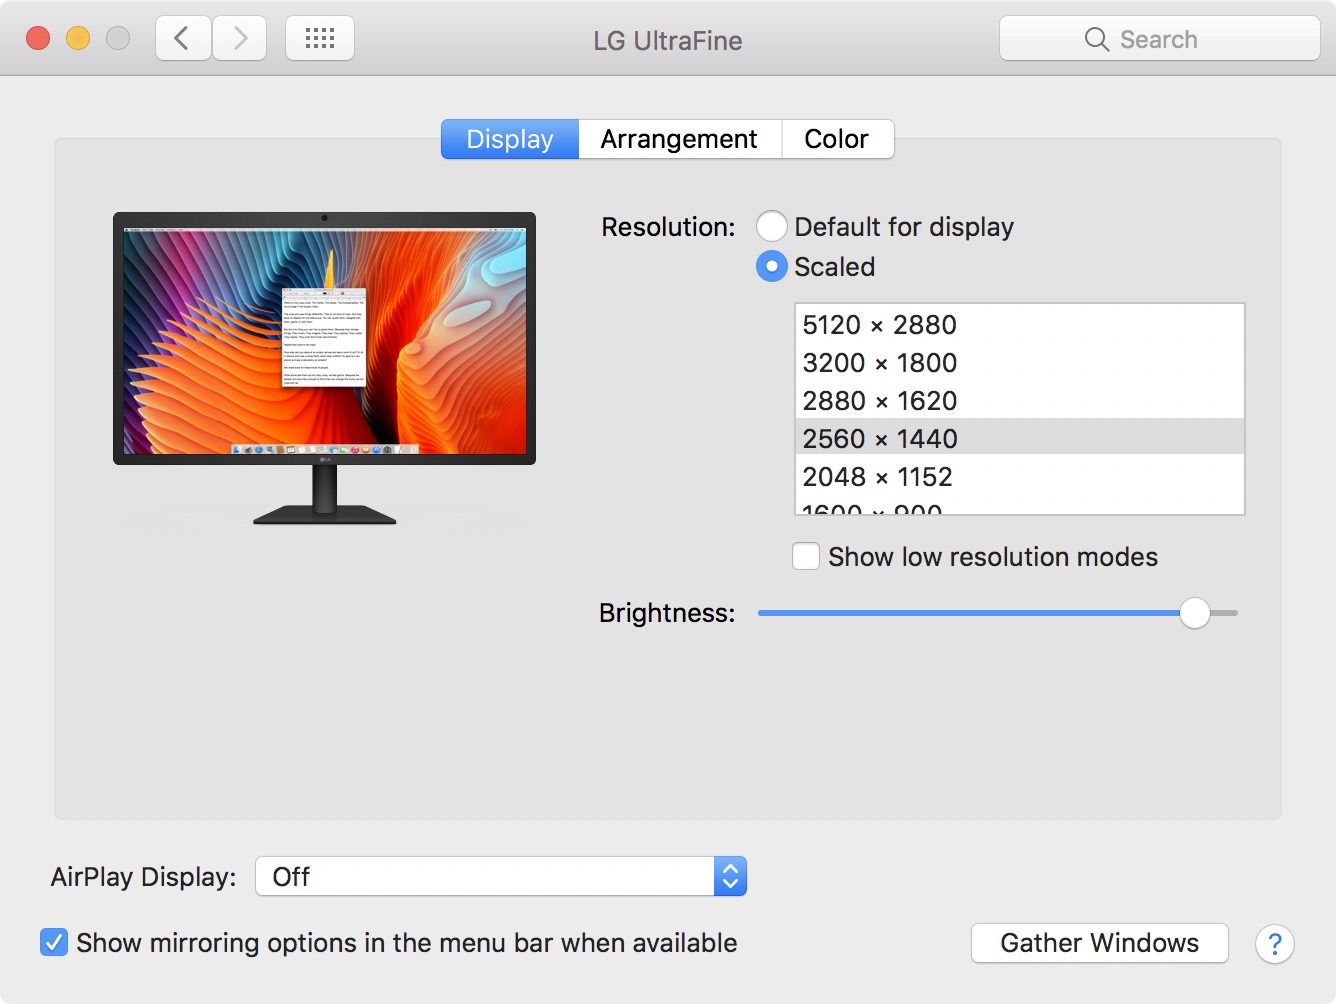 lg-ultrafine-5k-display-scaled-resolution